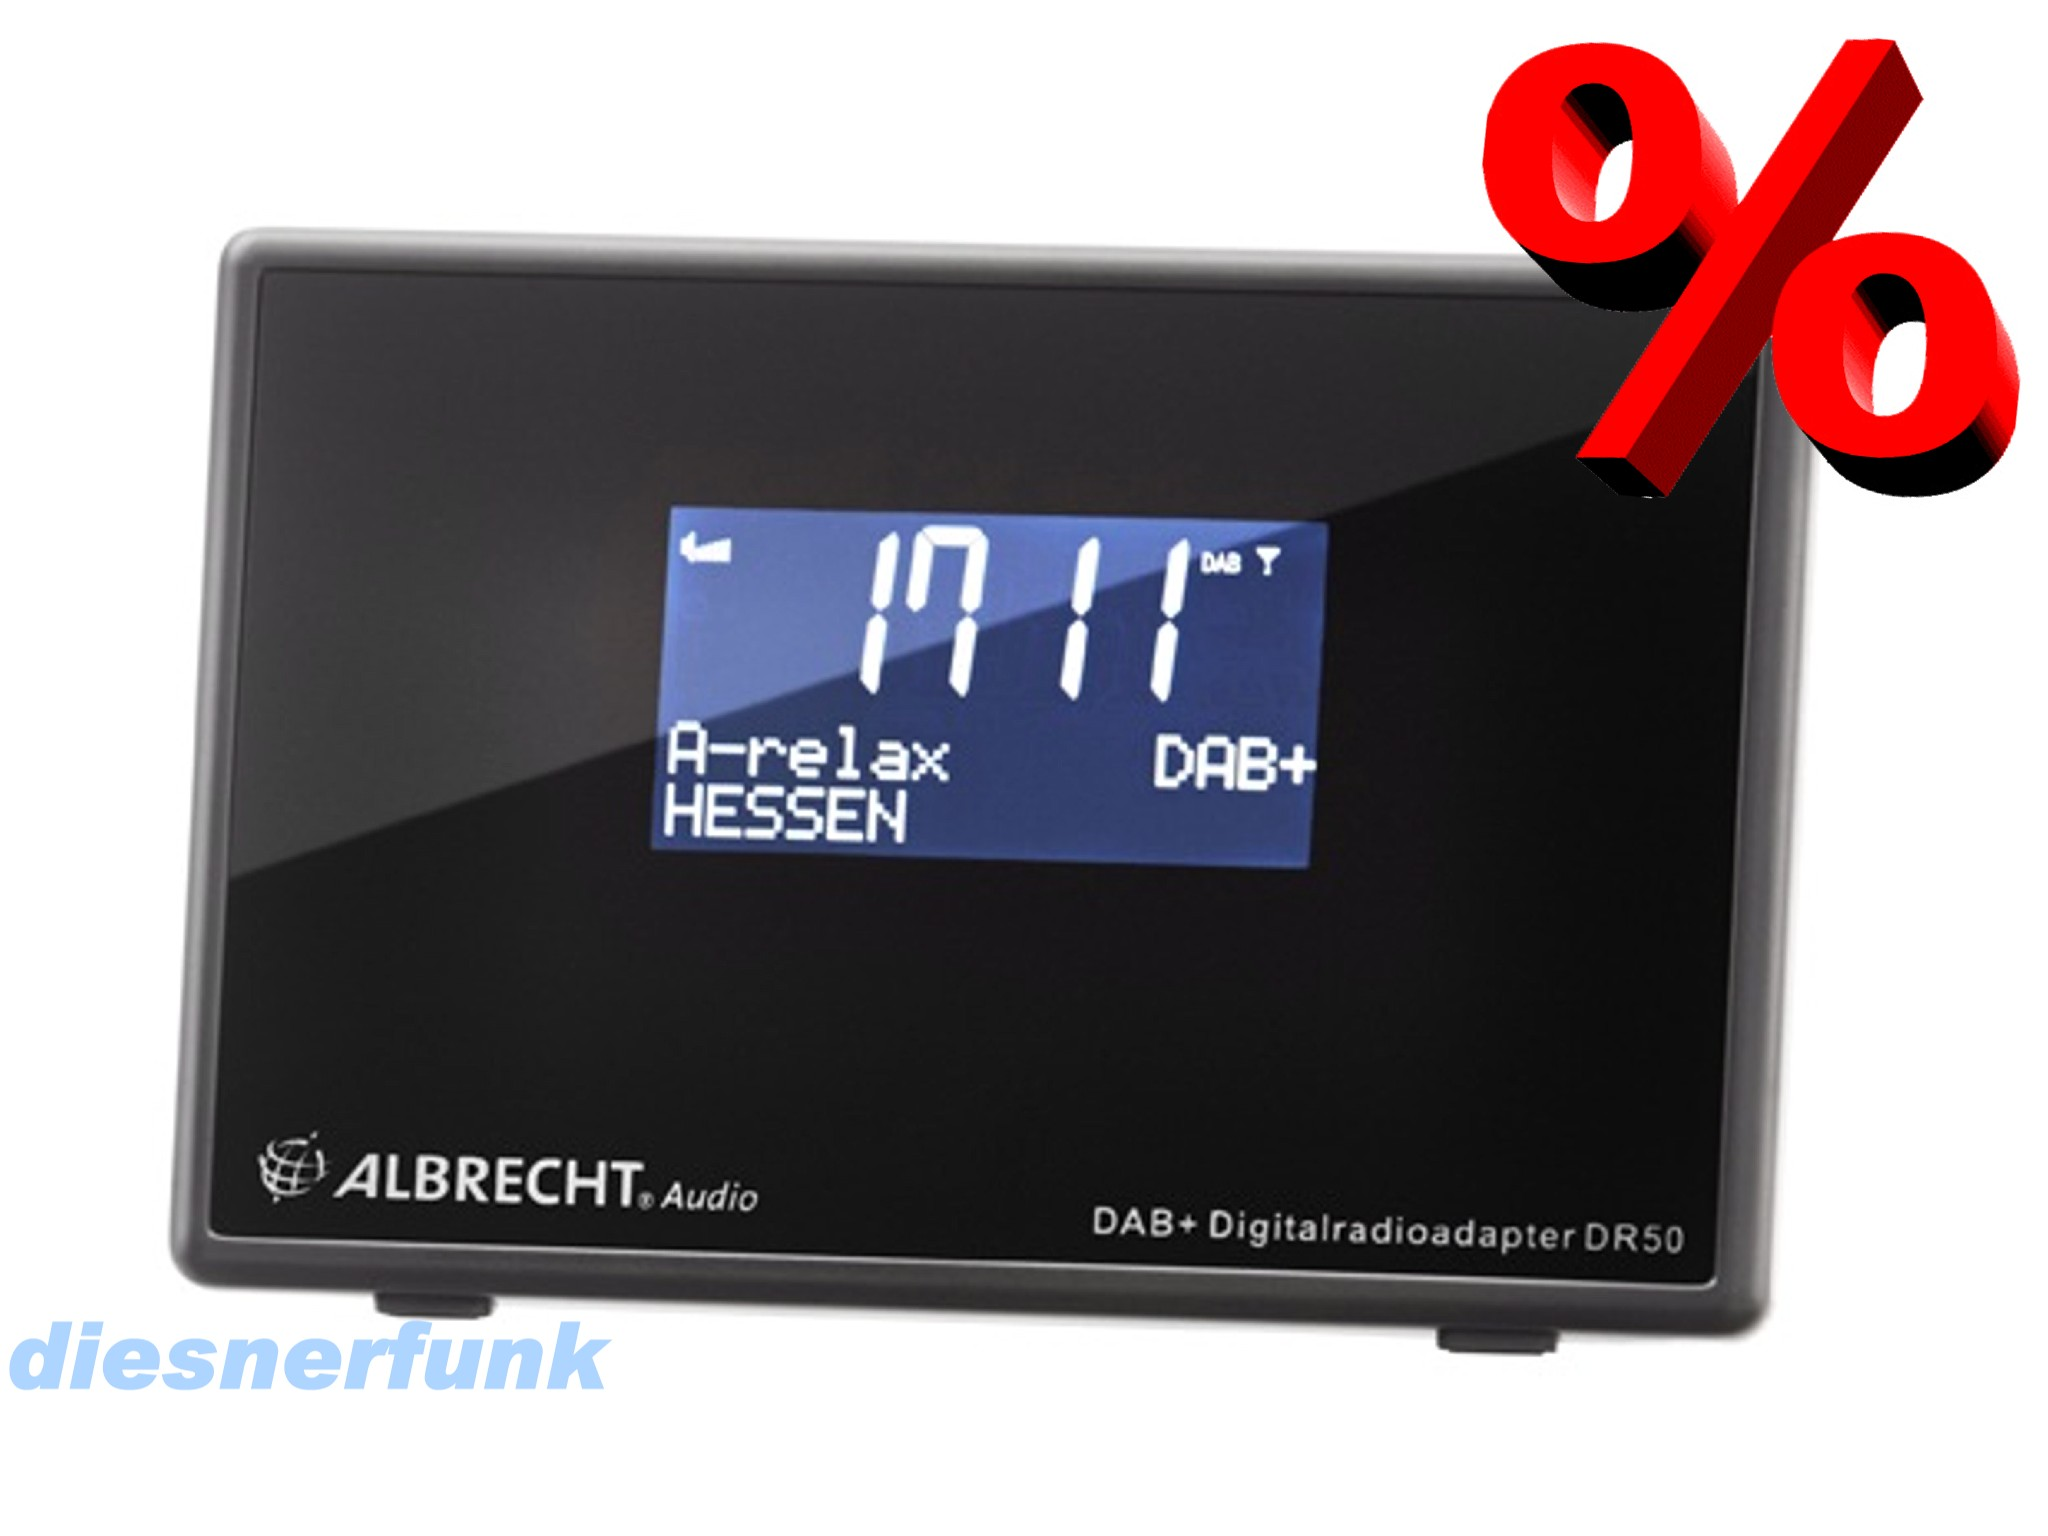 albrecht dr 50 digitalradio adapter f anschluss an. Black Bedroom Furniture Sets. Home Design Ideas